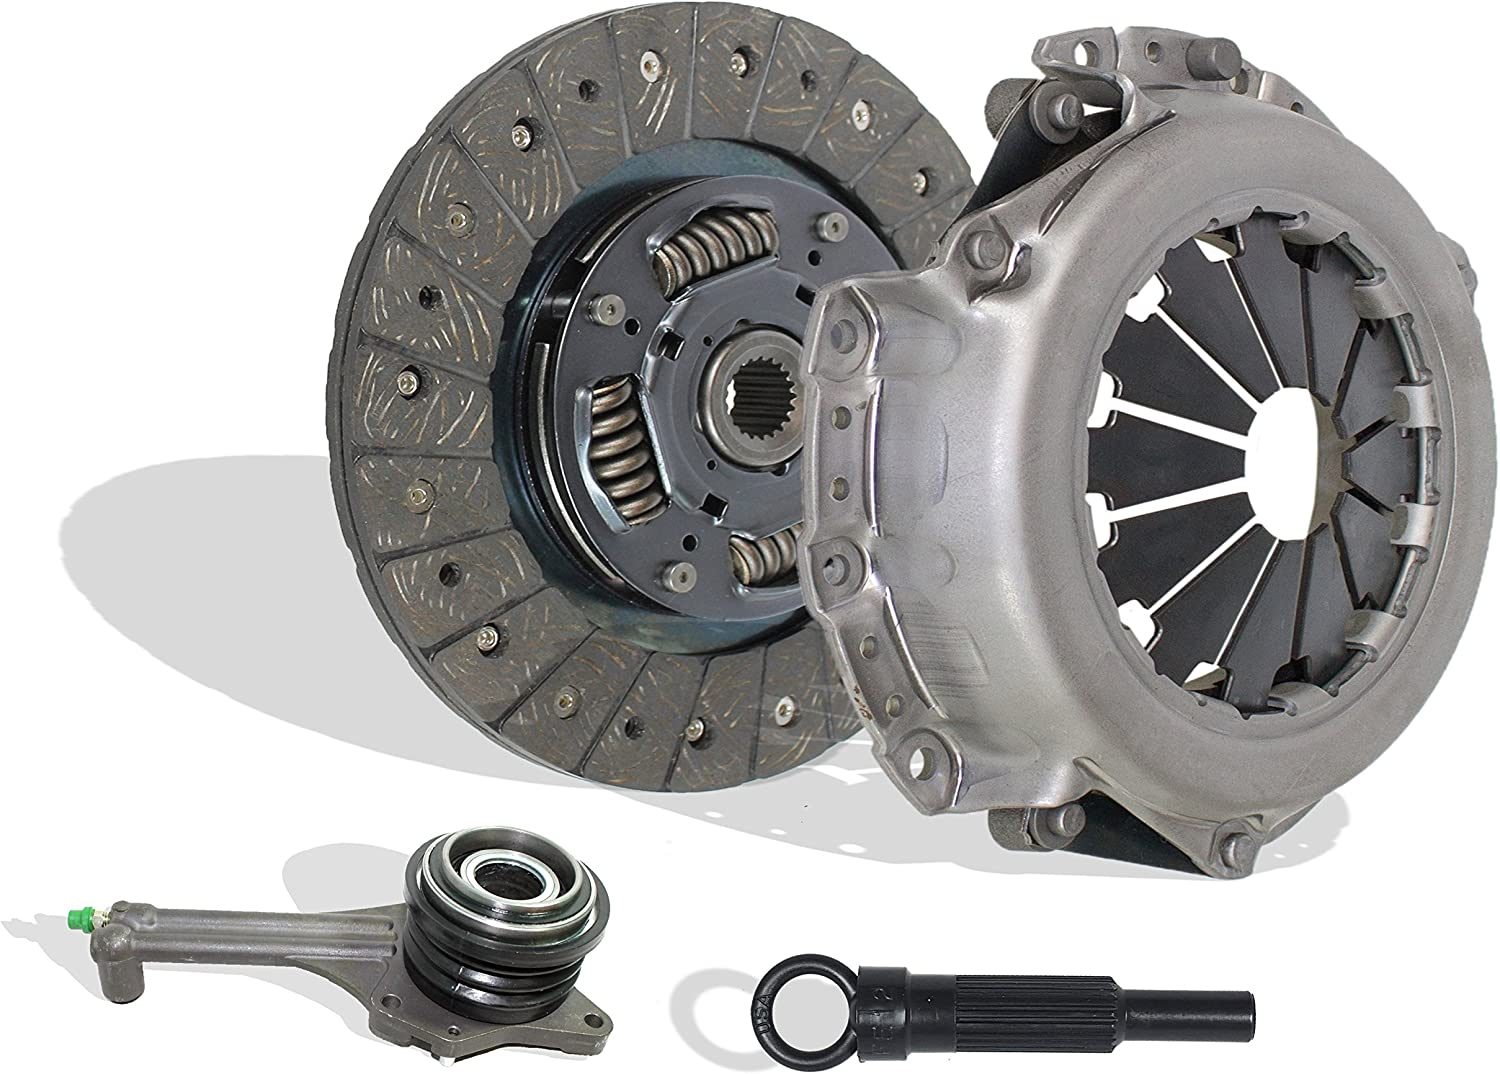 Clutch Kit Works With Mitsubishi Lancer Oz Rally Ls Es 2.0L l4 GAS SOHC Naturally Aspirated 2.0L l4 GAS DOHC Turbocharged 5 Speed Trans; 05-122